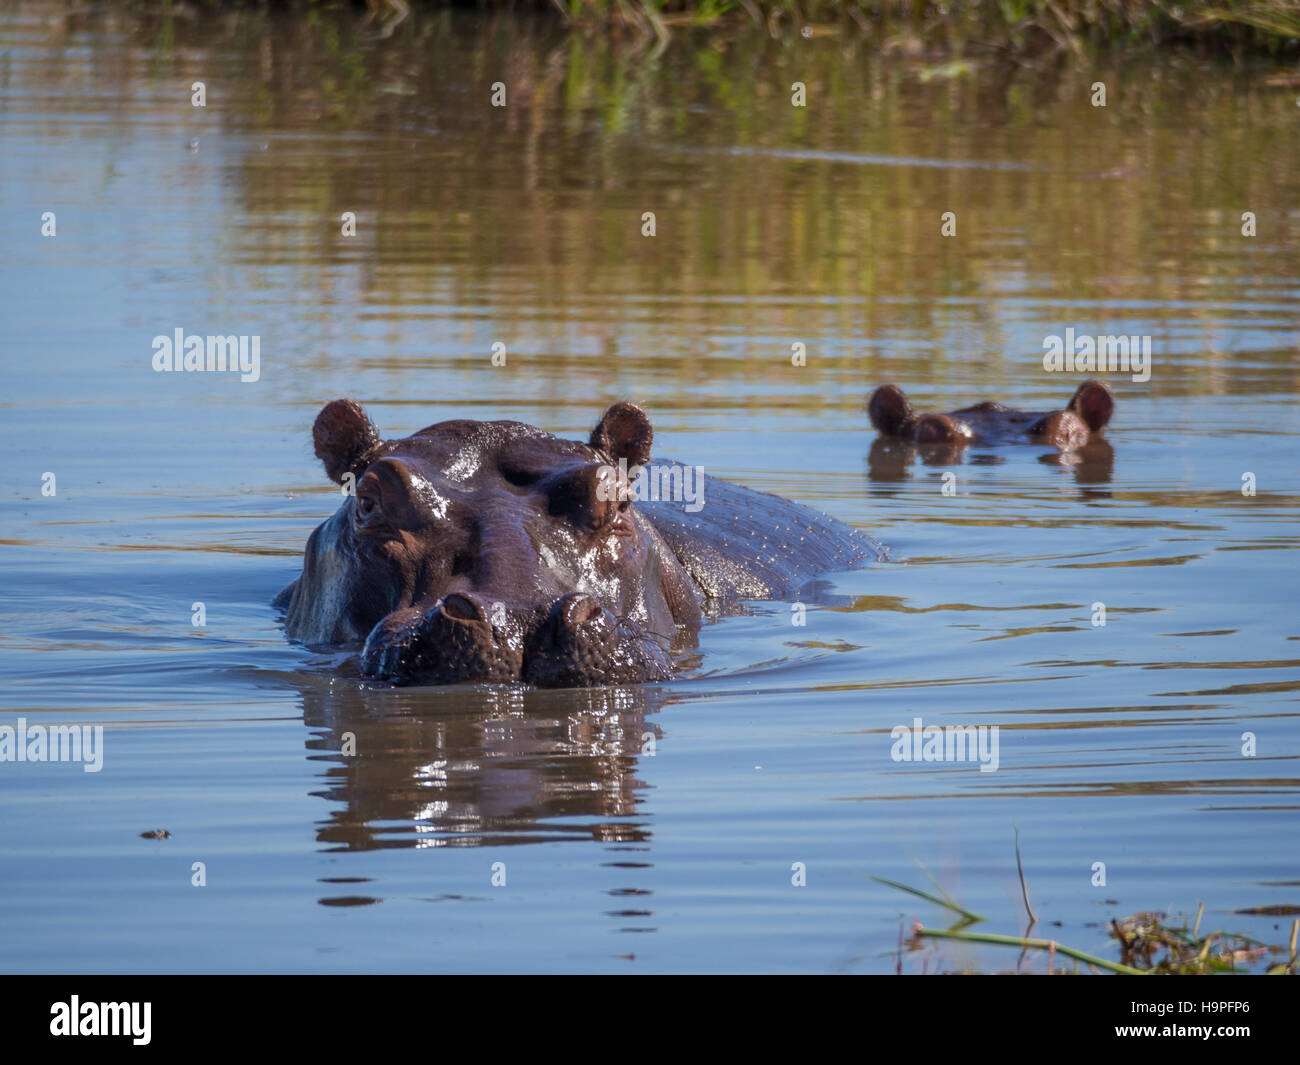 Two hippos almost completely submerged in water with only the heads sticking out, safari, in Moremi NP, Botswana - Stock Image